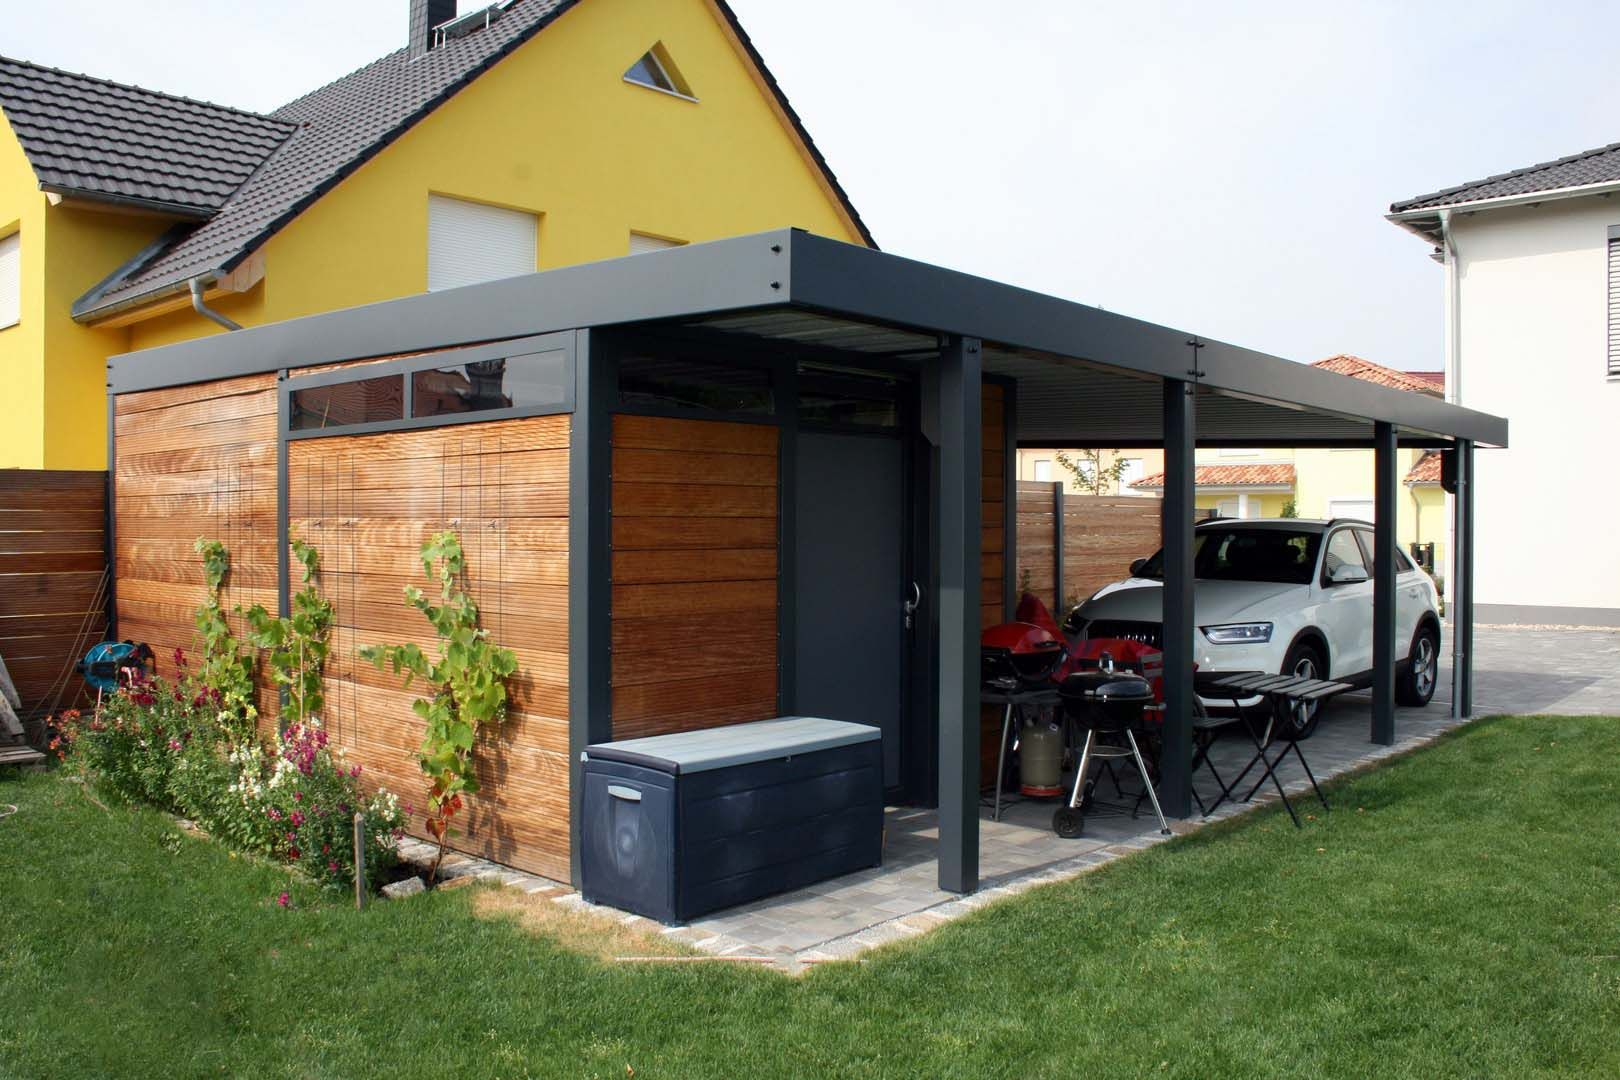 Design metall carport aus holz stahl glas mit ger teraum for Carport blueprints